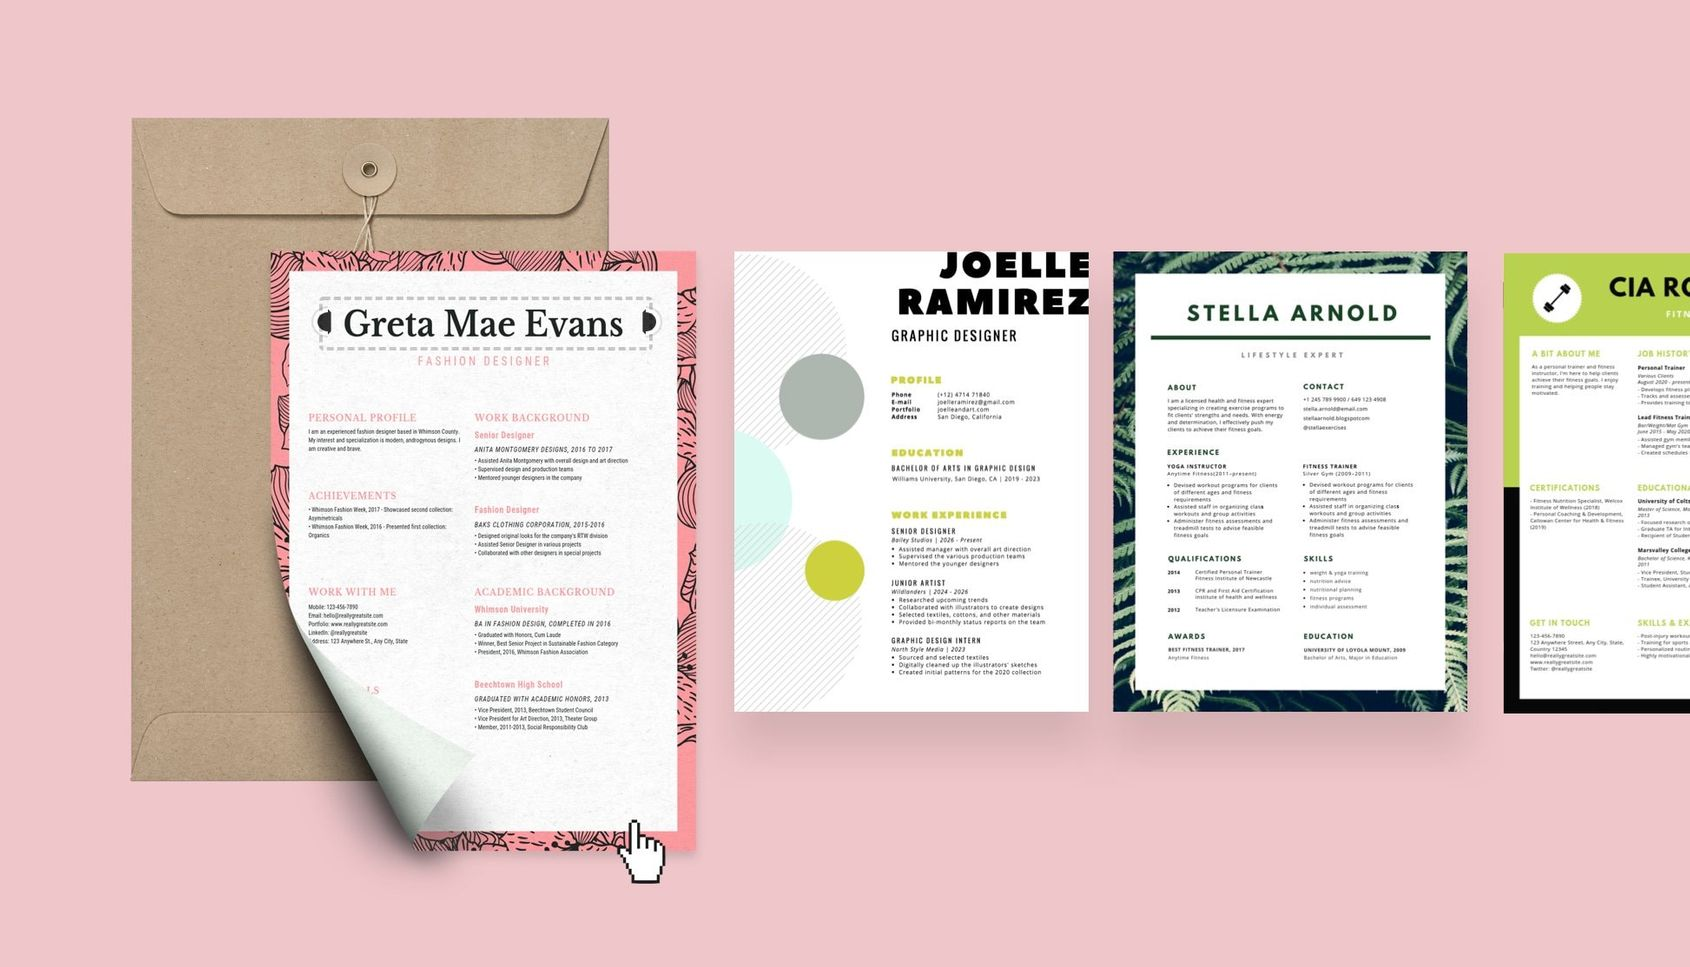 free resume builder design custom in canva build your own nurse aide examples rf survey Resume Build Your Own Resume Free